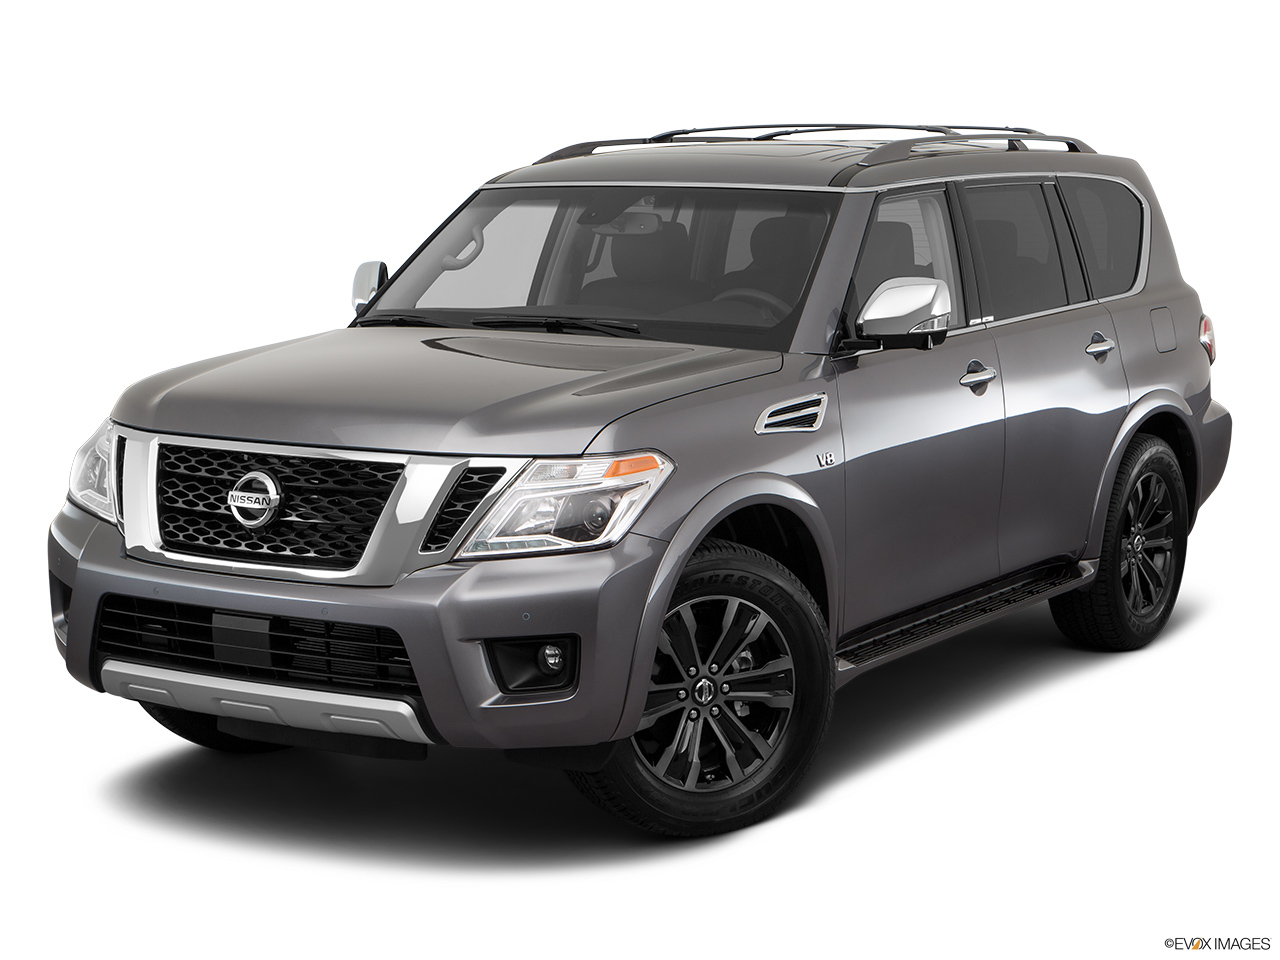 2014 nissan armada reviews pictures and prices us html autos weblog. Black Bedroom Furniture Sets. Home Design Ideas